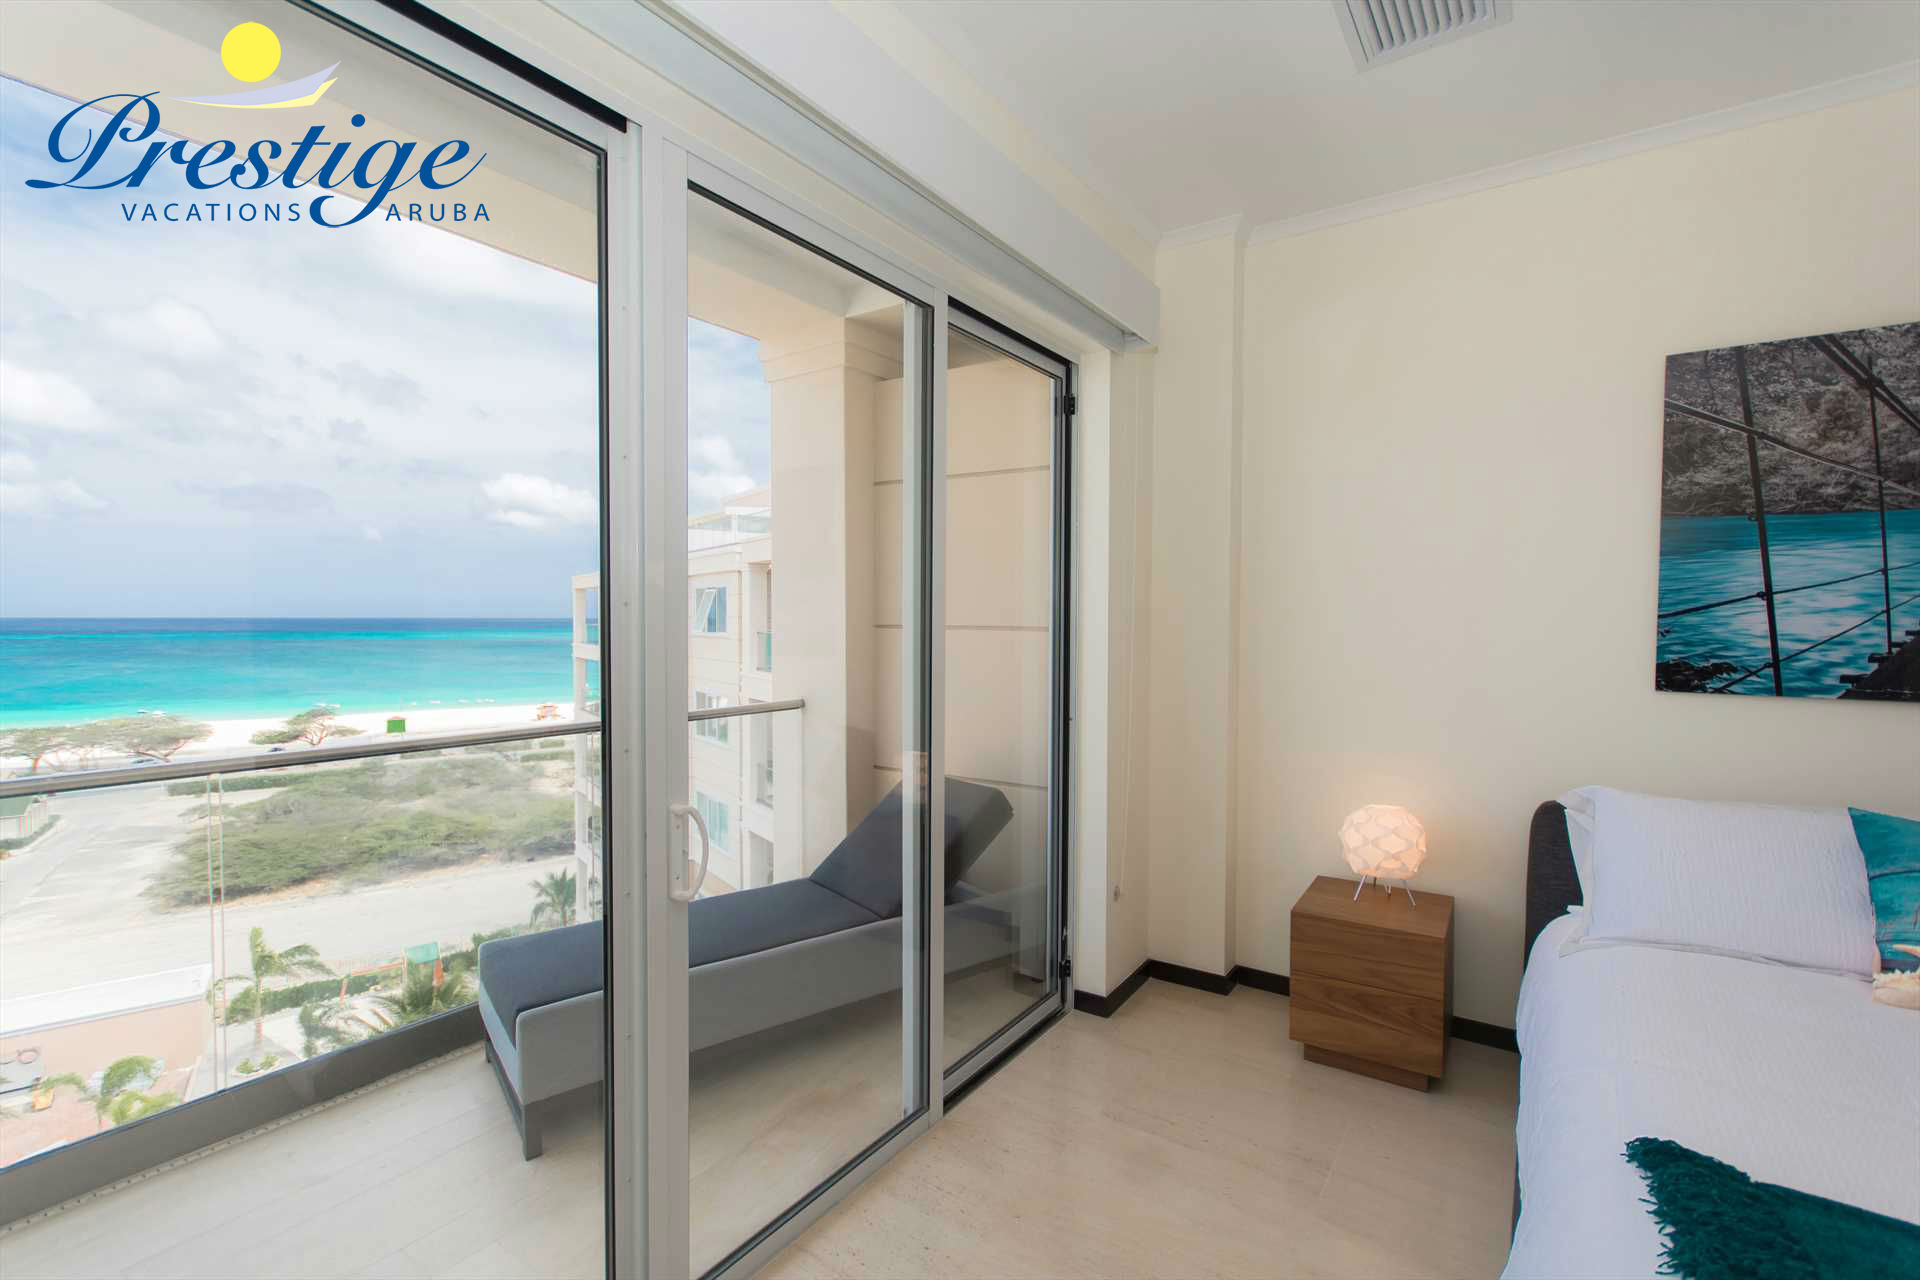 Master bedroom with access to balcony with stunning views